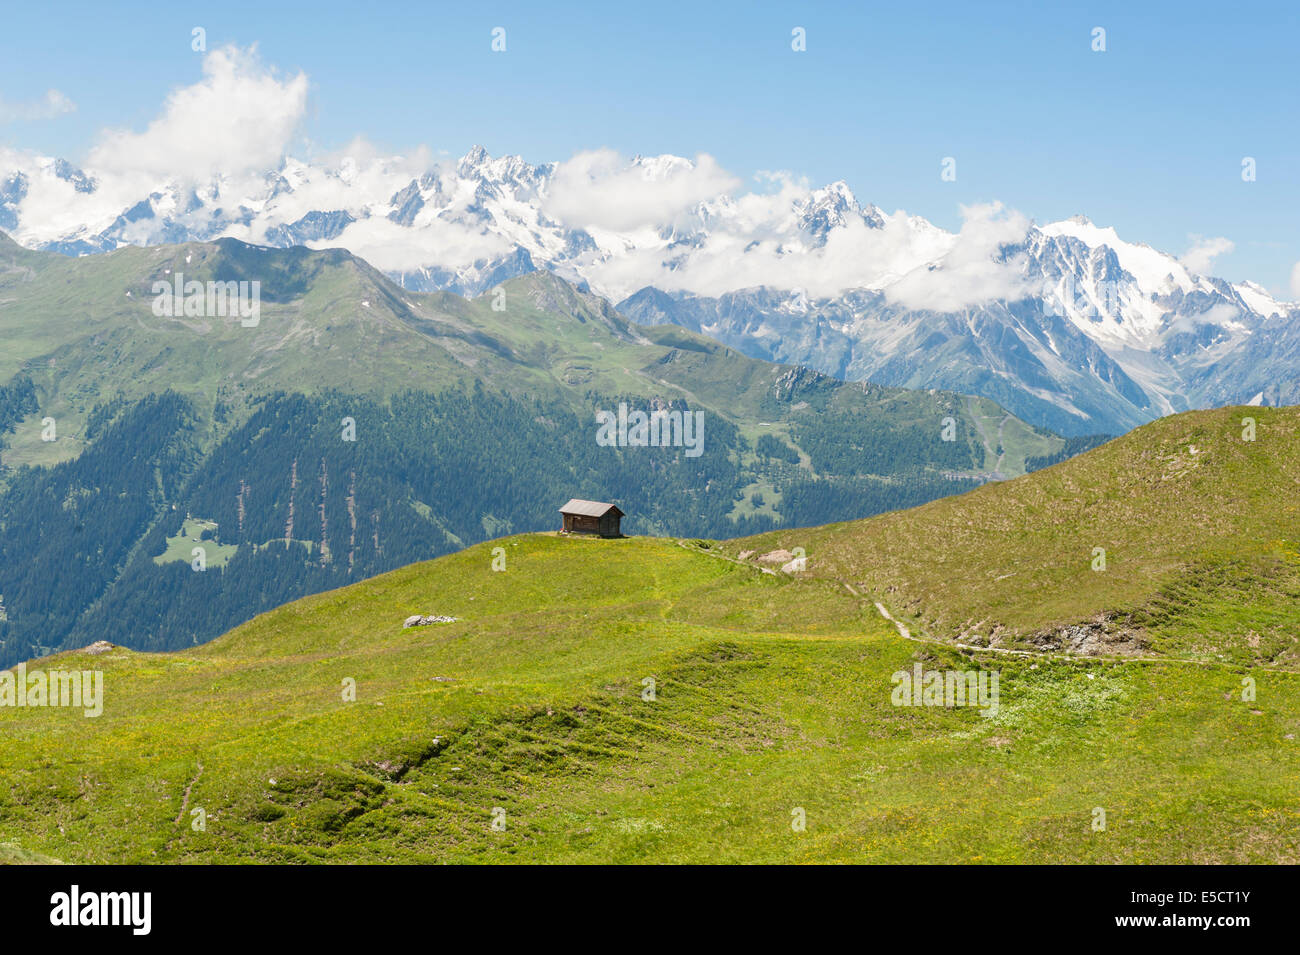 Mountain landscape with alpine pastures between La Chaux and Ruinettes above the holiday village of Verbier, Wallis, - Stock Image